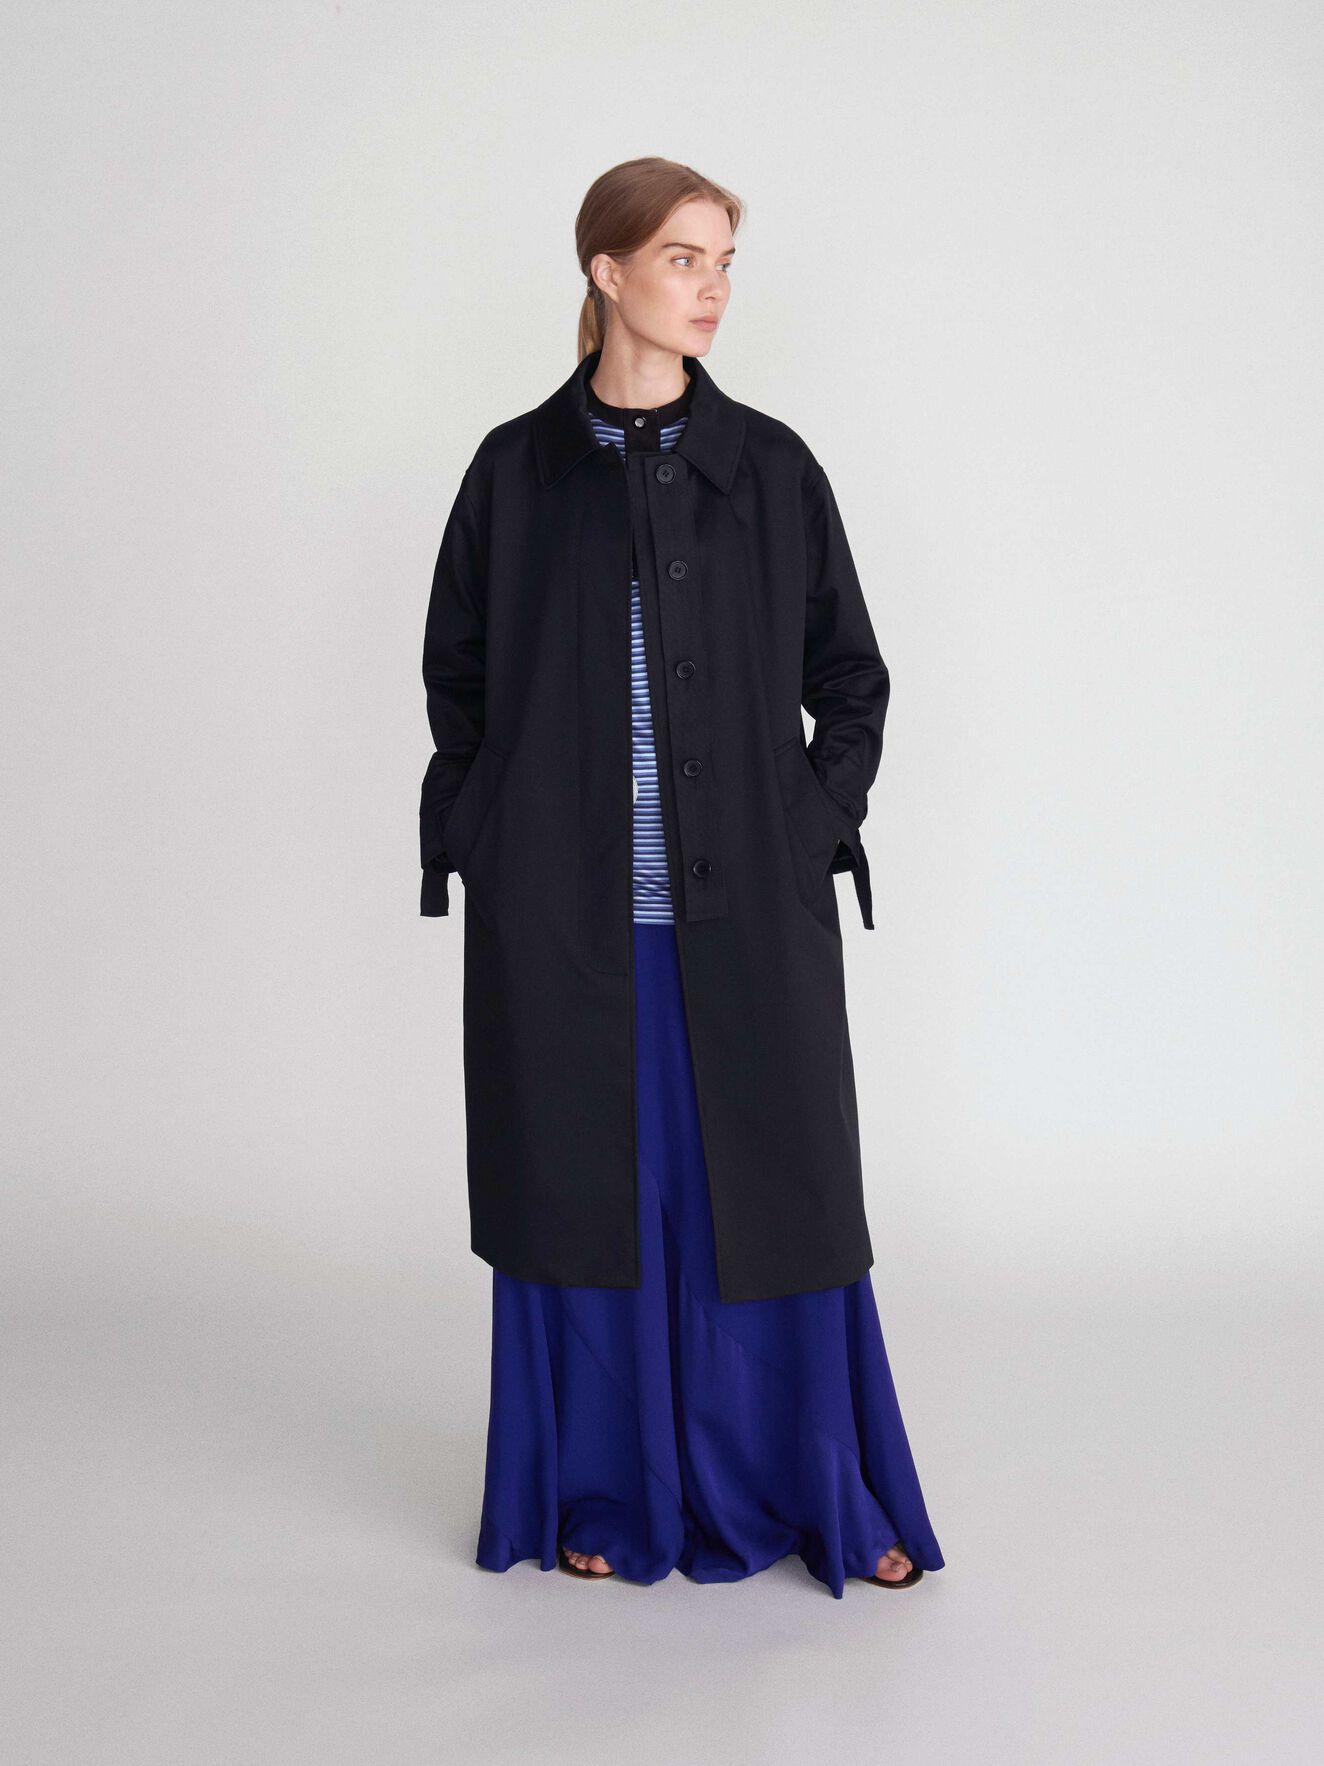 Agit Coat in Black from Tiger of Sweden